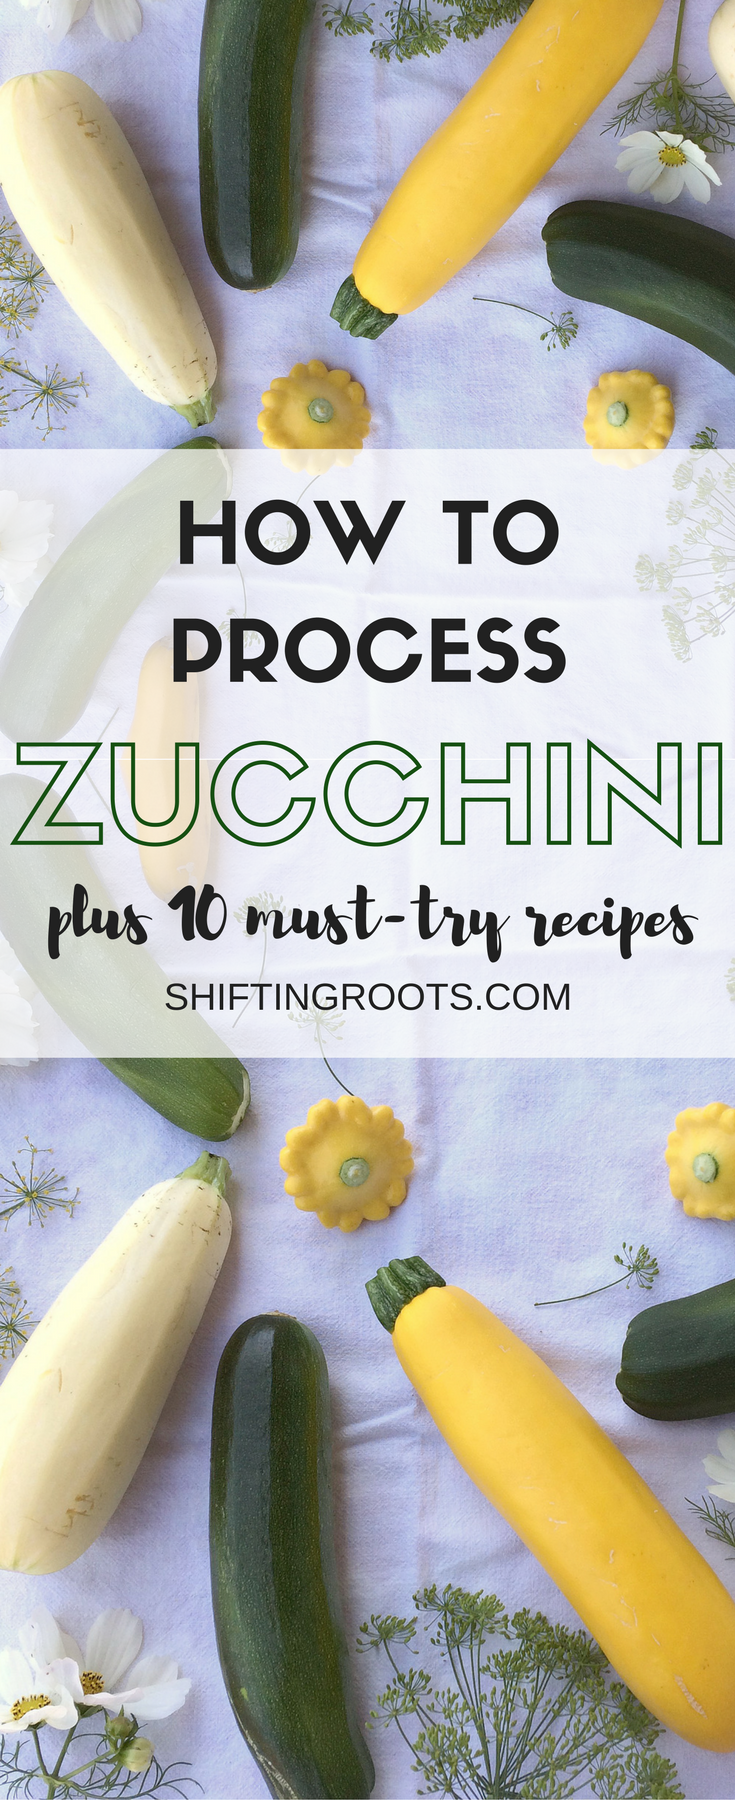 Everyone loves to grow zucchini and summer squash, but no one knows what to do with it.  Here's how to process it and 10 plus ways to use it in soups, suppers, desserts, breads and more!